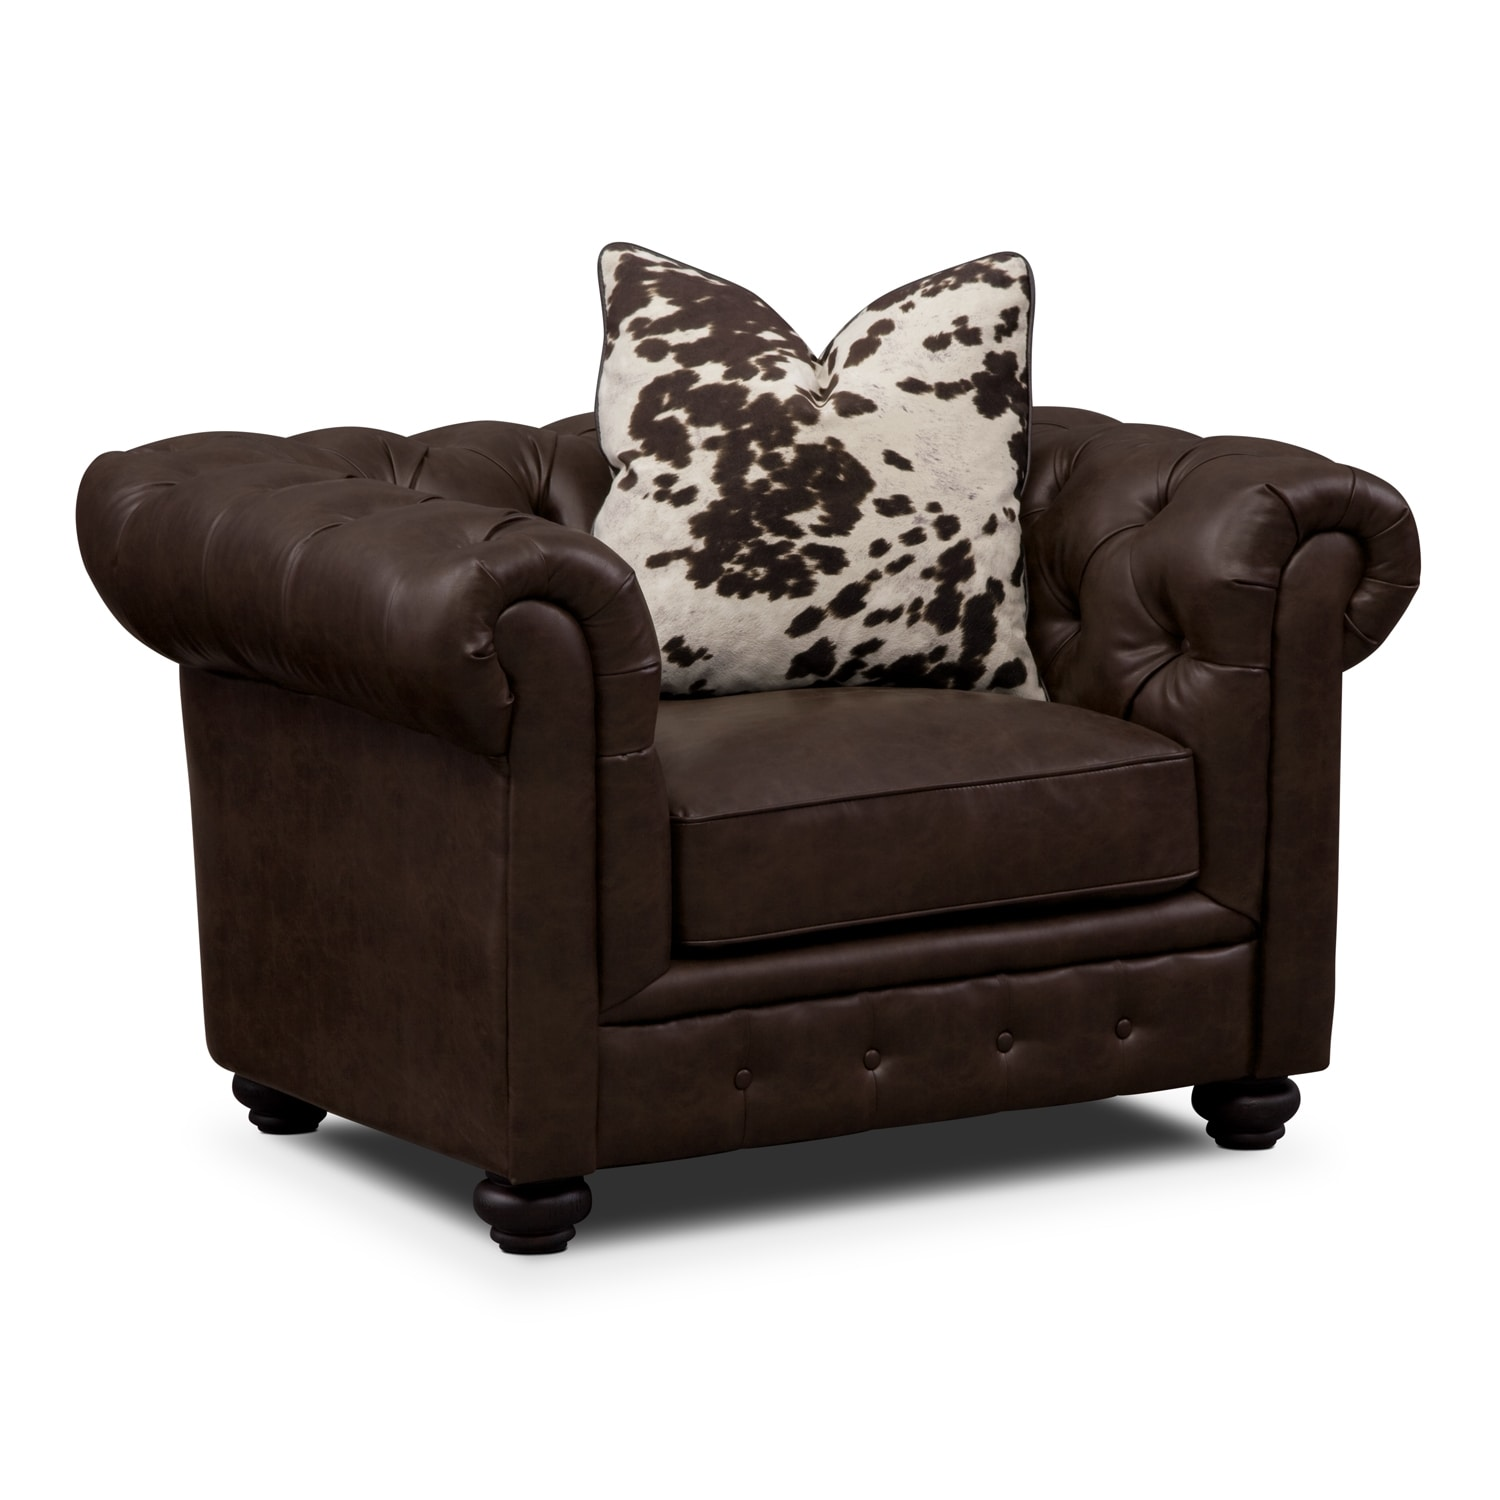 Living Room Furniture - Madeline Chocolate Chair